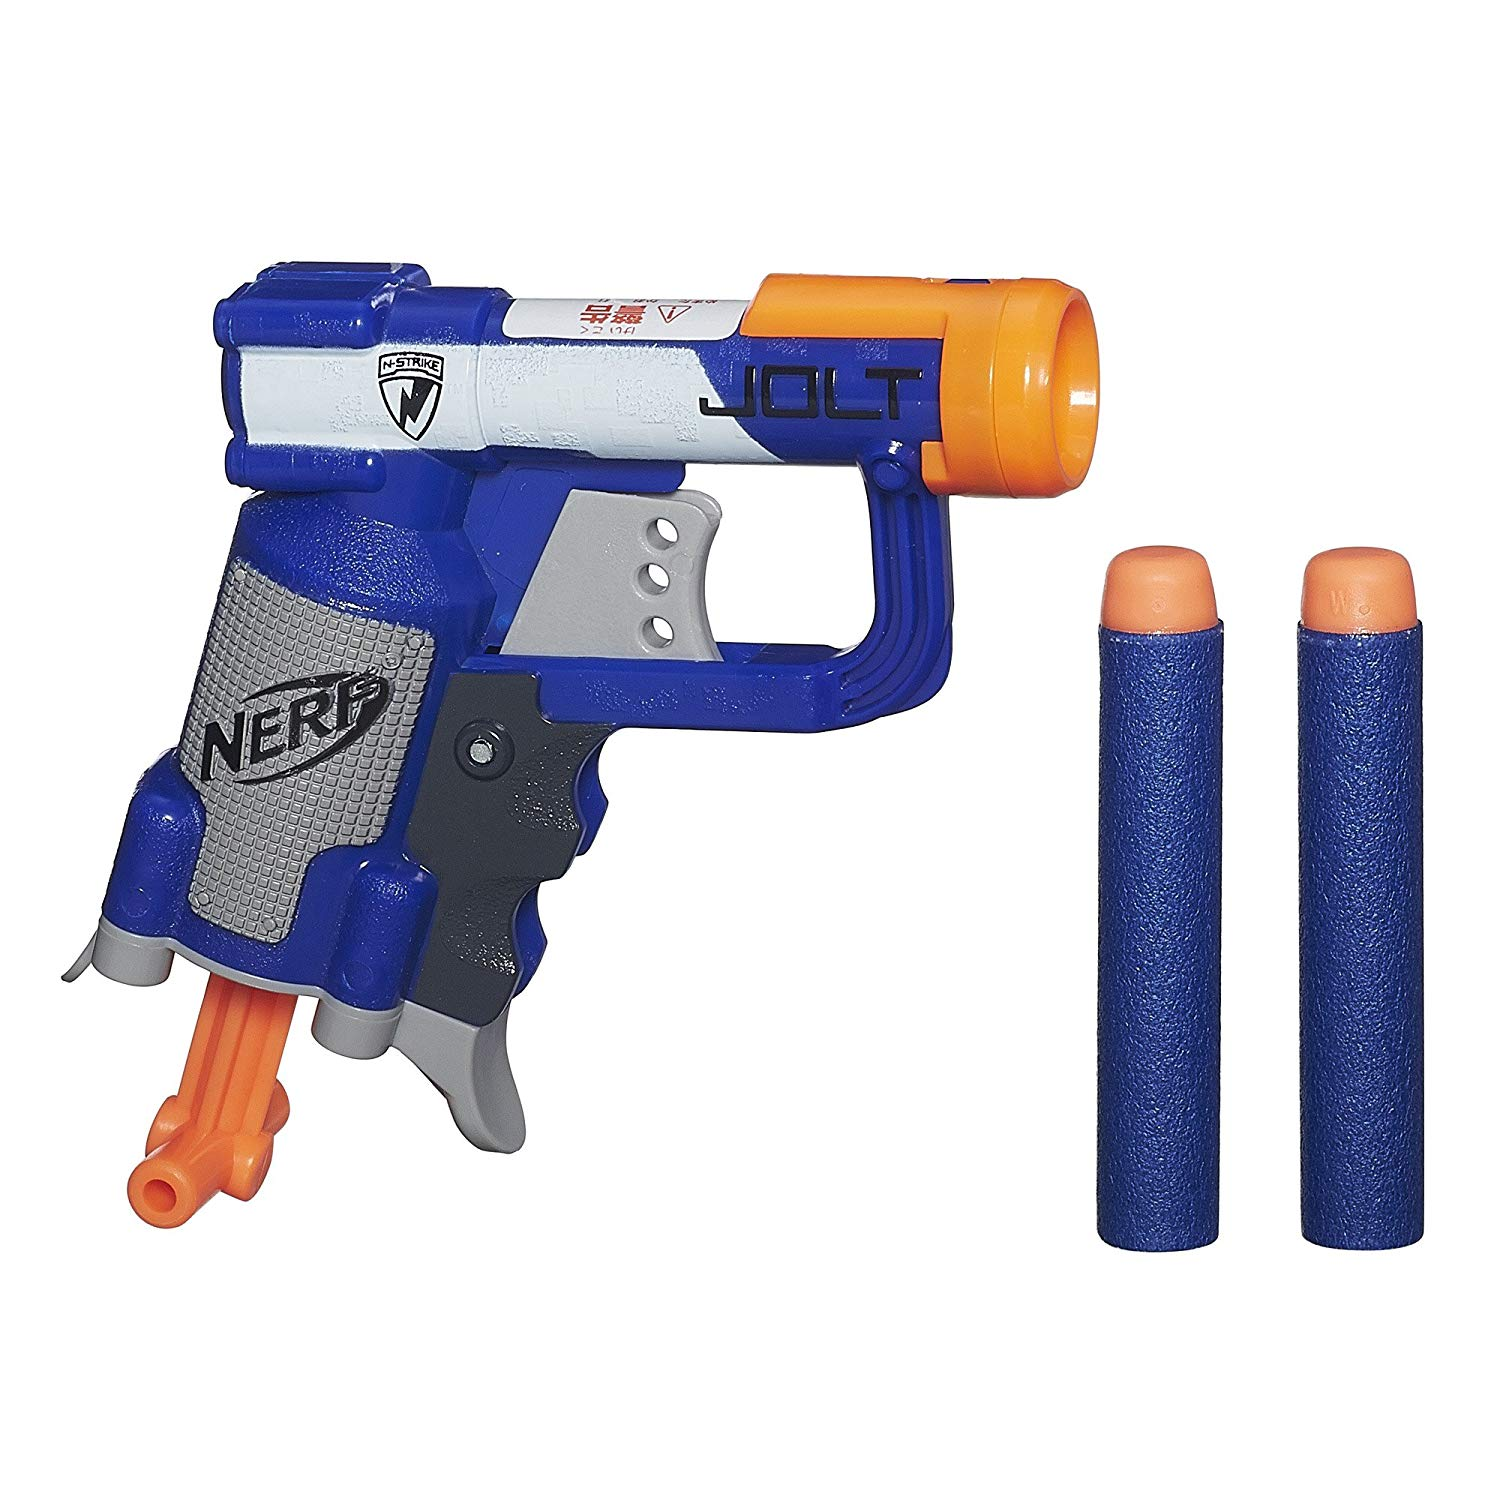 N-Strike Jolt Blaster (blue), Ultra-small JOLT blaster packs a powerful punch By Nerf